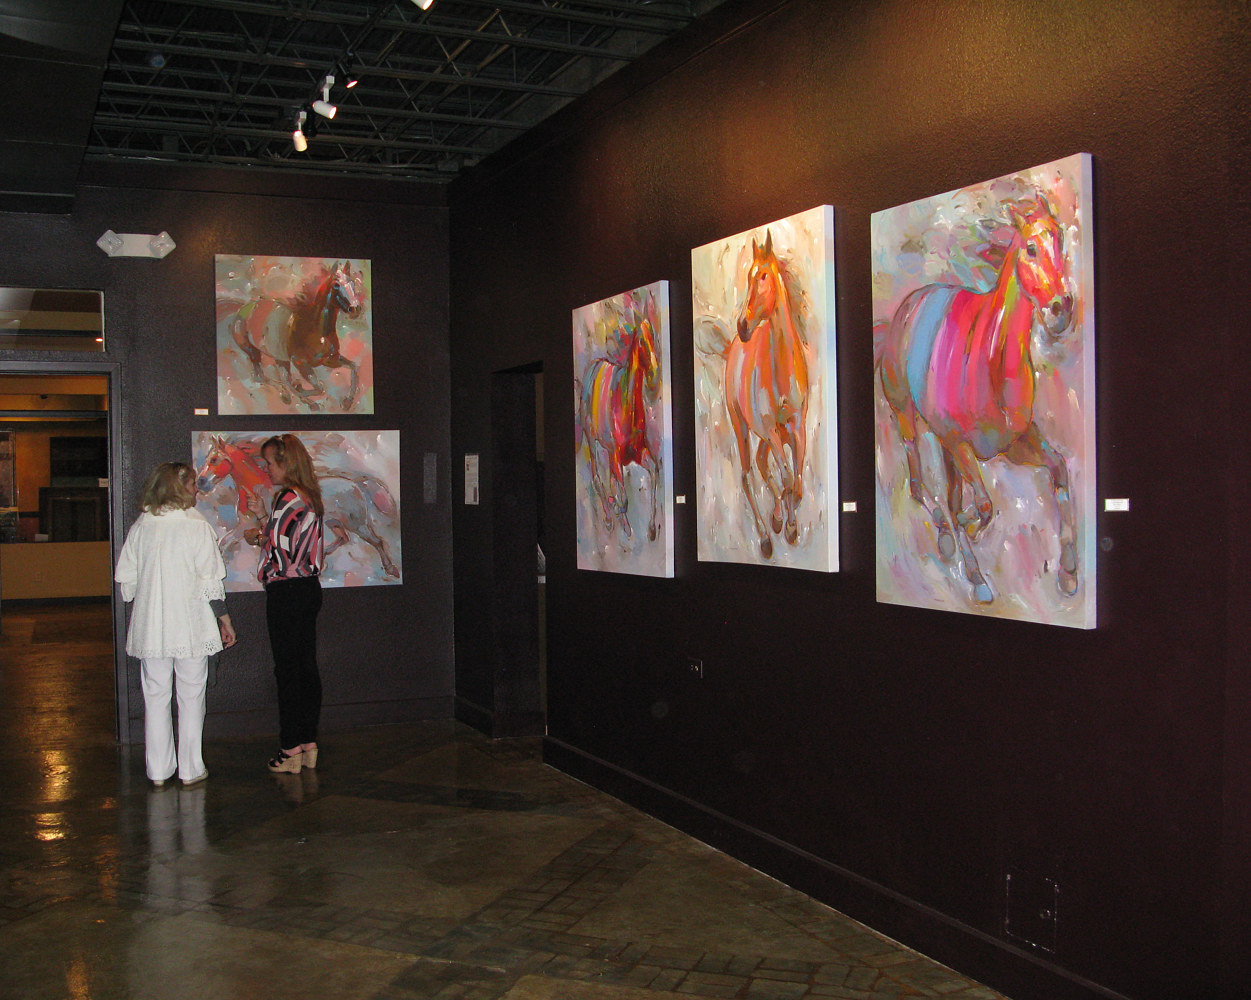 Solo exhibition at Legacy Fine Art Gallery, Hot Springs, AR by Hooshang Khorasani